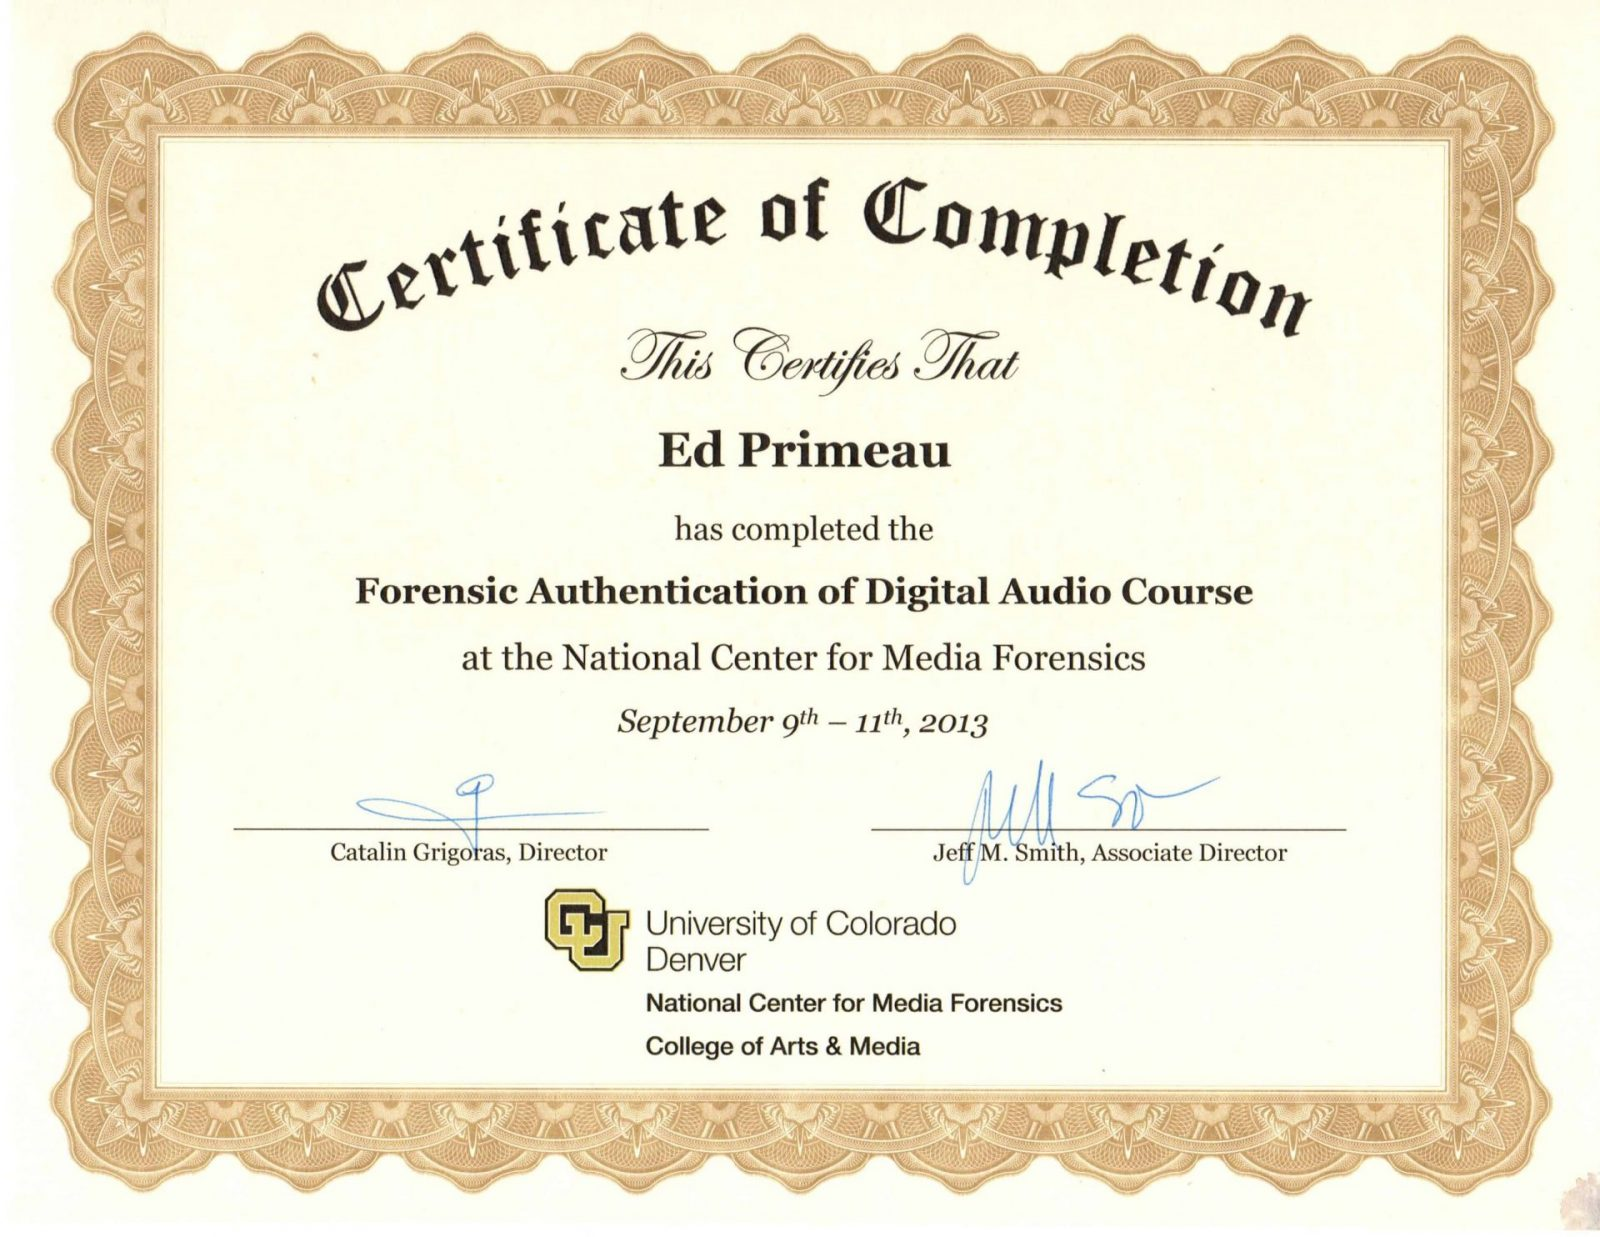 Forensic Authentication of Digital Audio Certificate